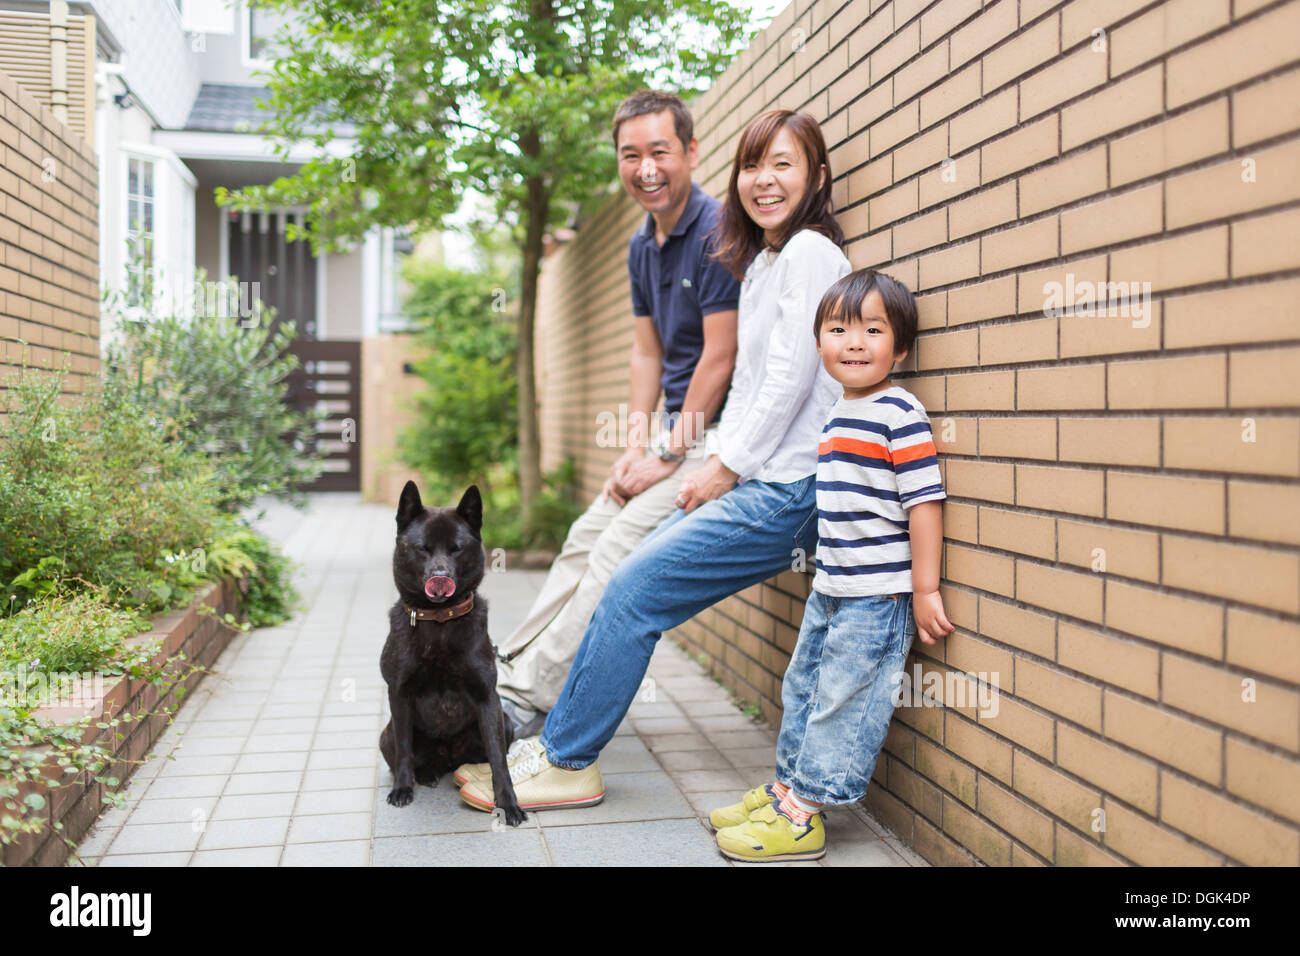 Family outdoors with pet dog - Stock Image